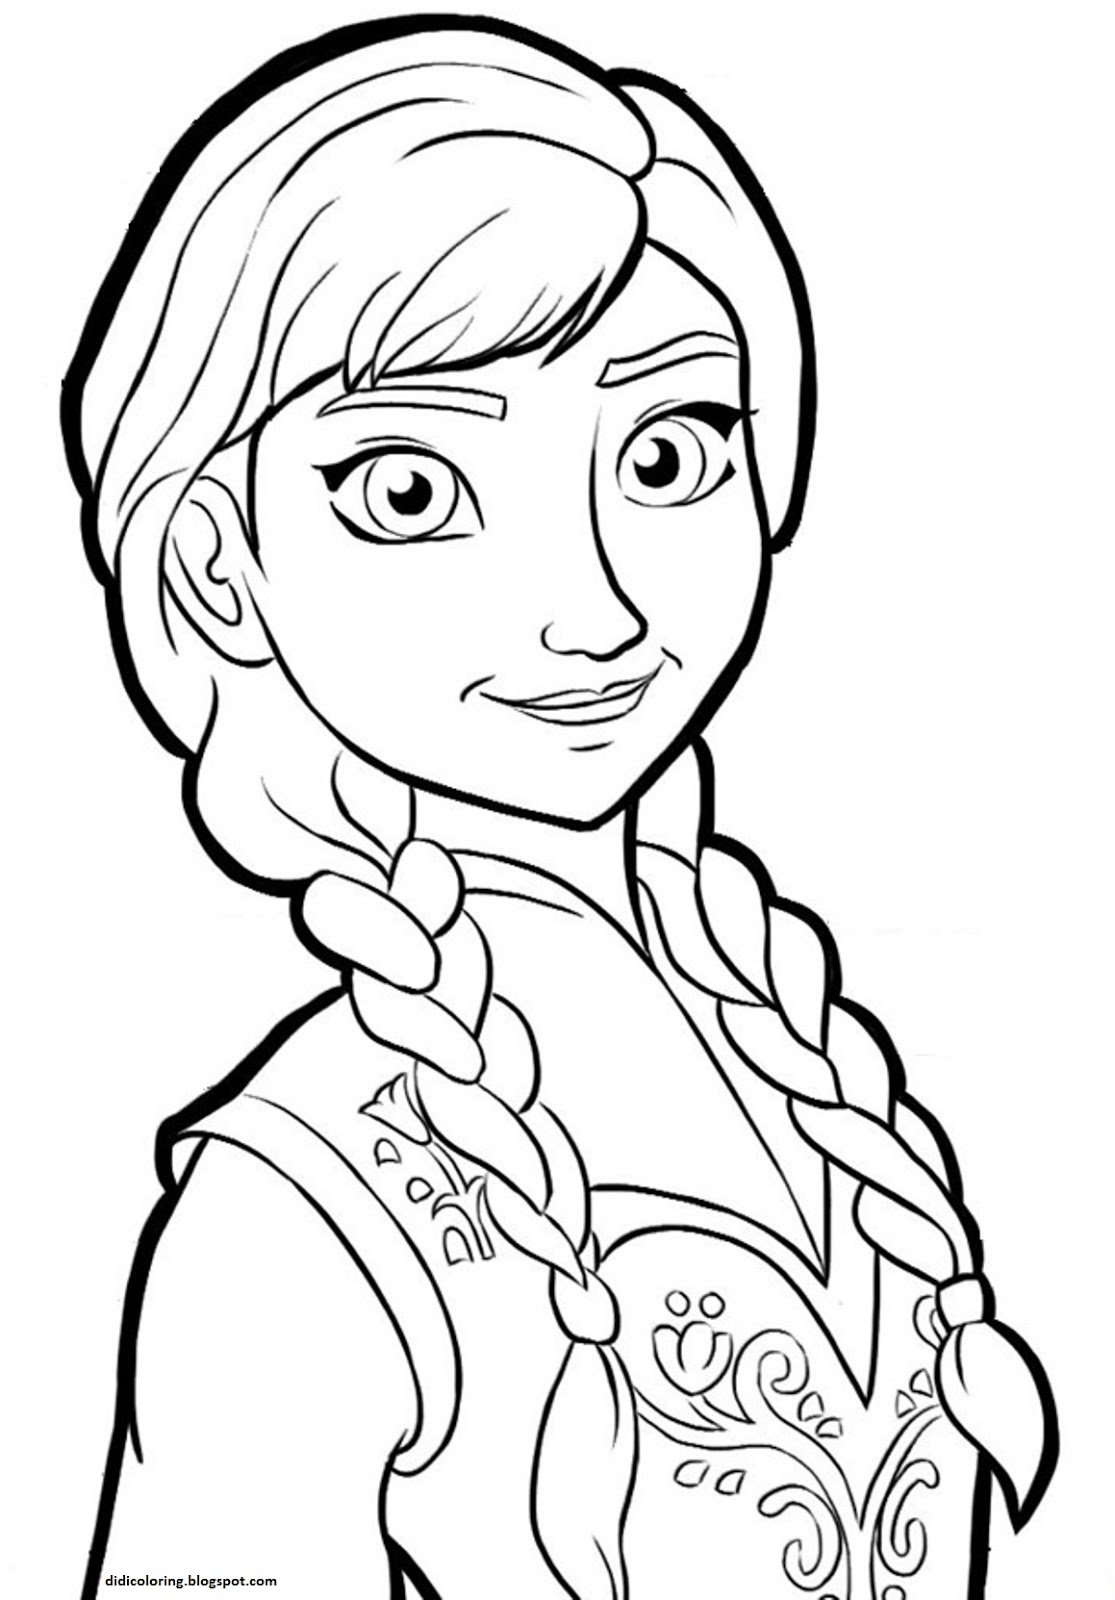 Free Printable Frozen Walt Disney Characters Coloring For